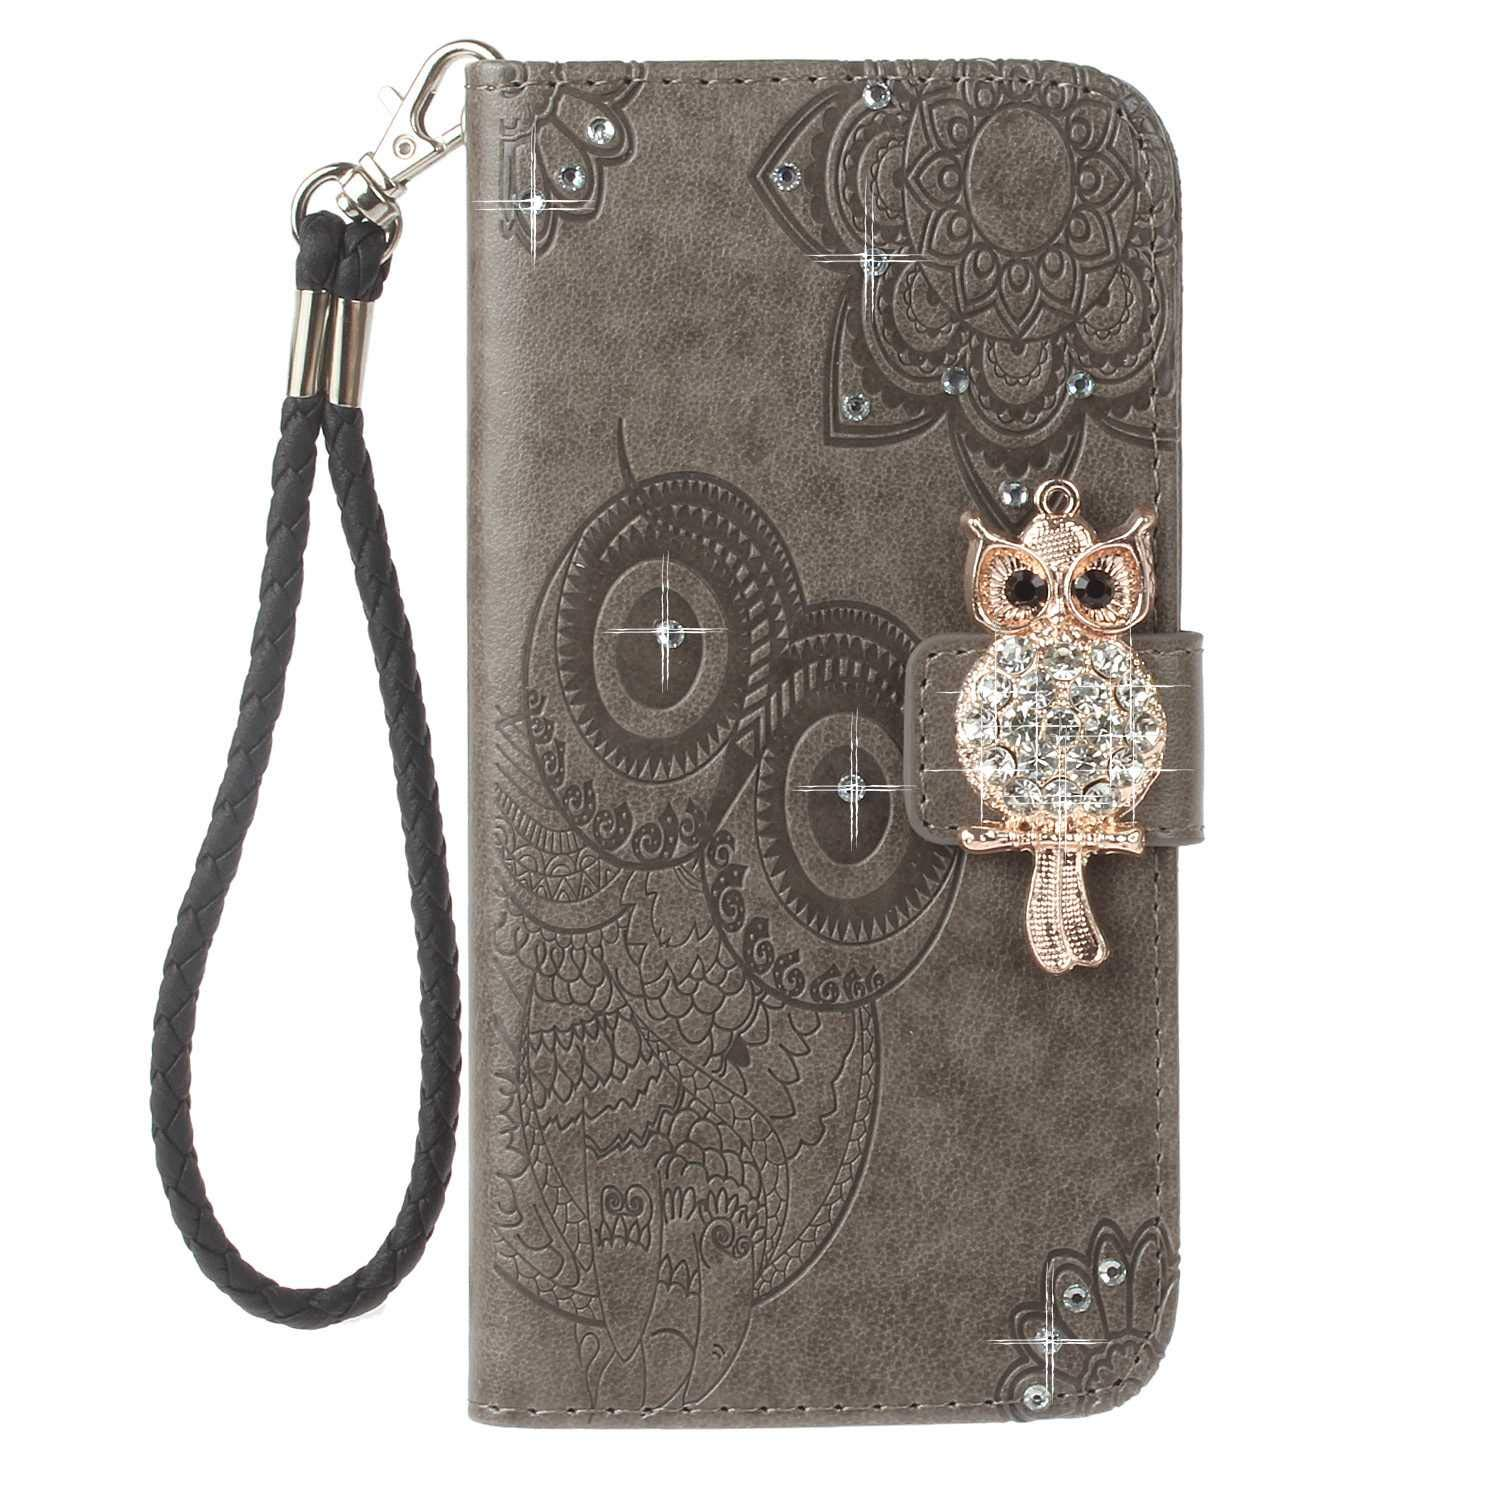 Bear Village Galaxy S9 Case, Leather Case with Wrist Strap and Credit Card Slot, Owl Magnetic Closure Shockproof Cover for Samsung Galaxy S9, Gray by Bear Village